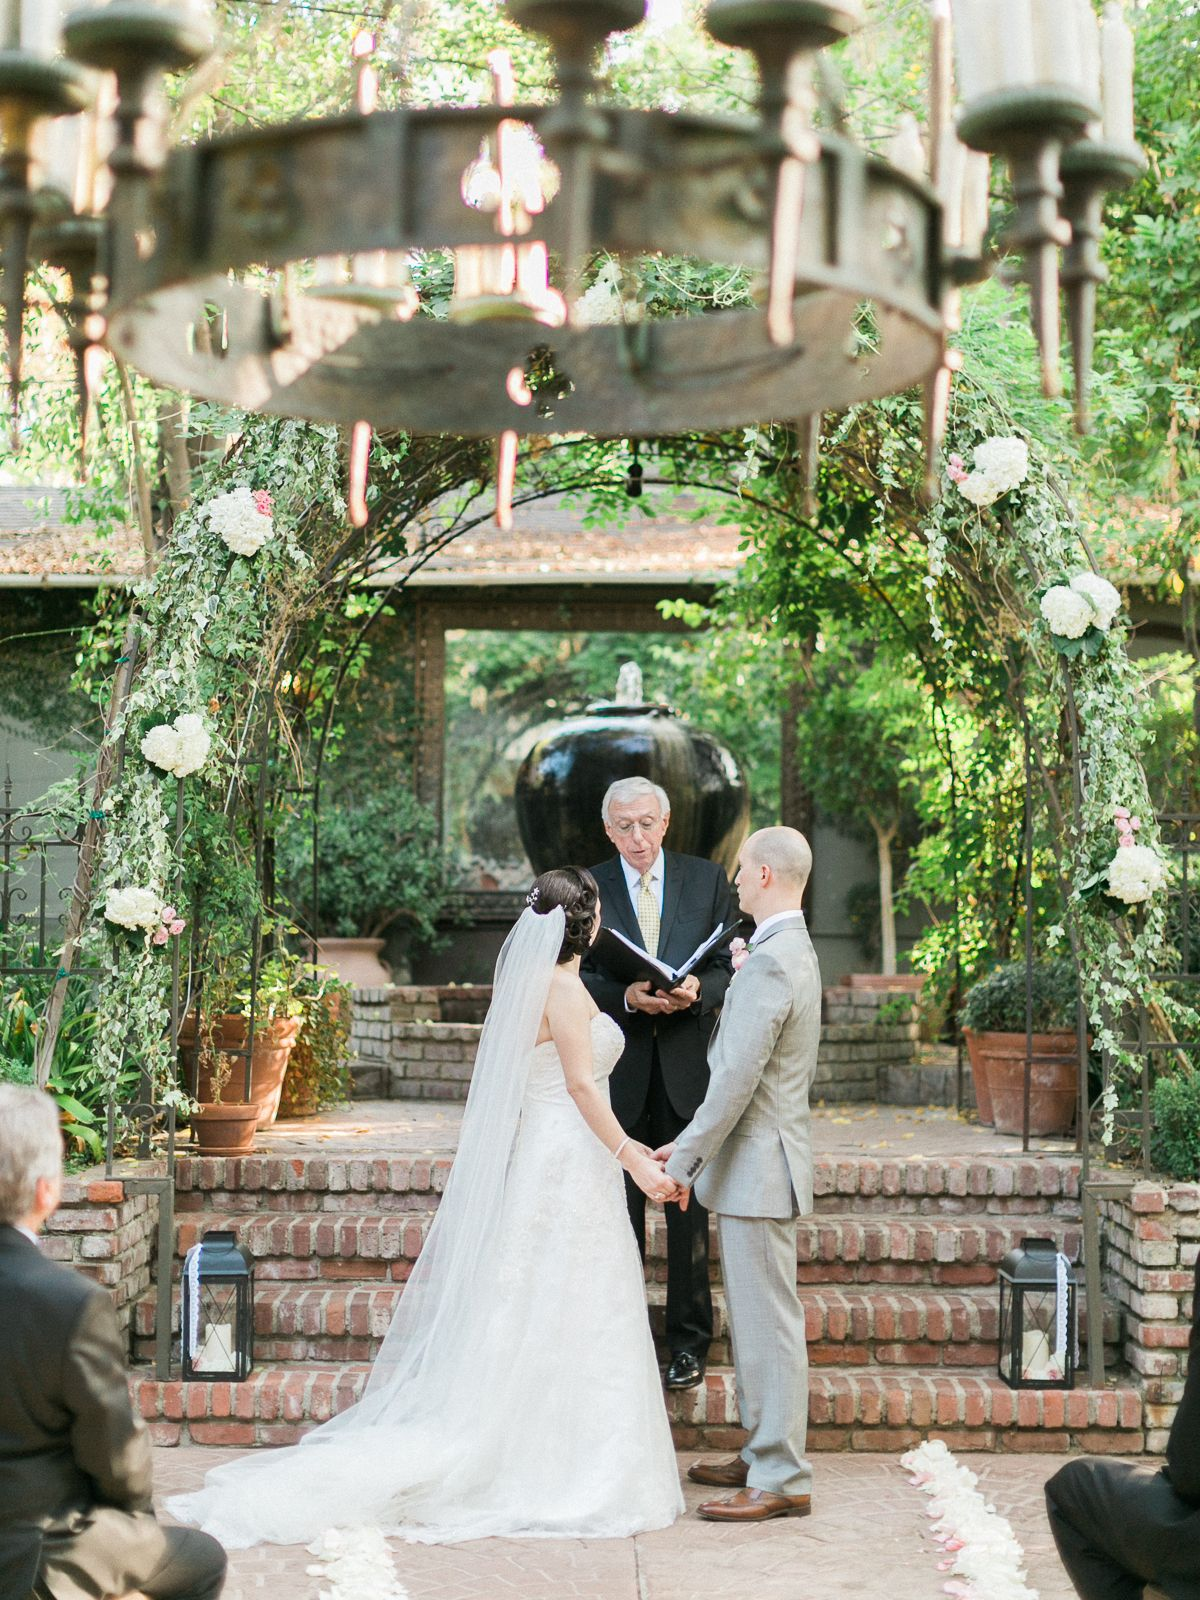 An Intimate Beautiful Wedding At The Villa In Woodland Hills Los Angeles Photography By Jeremy Chou